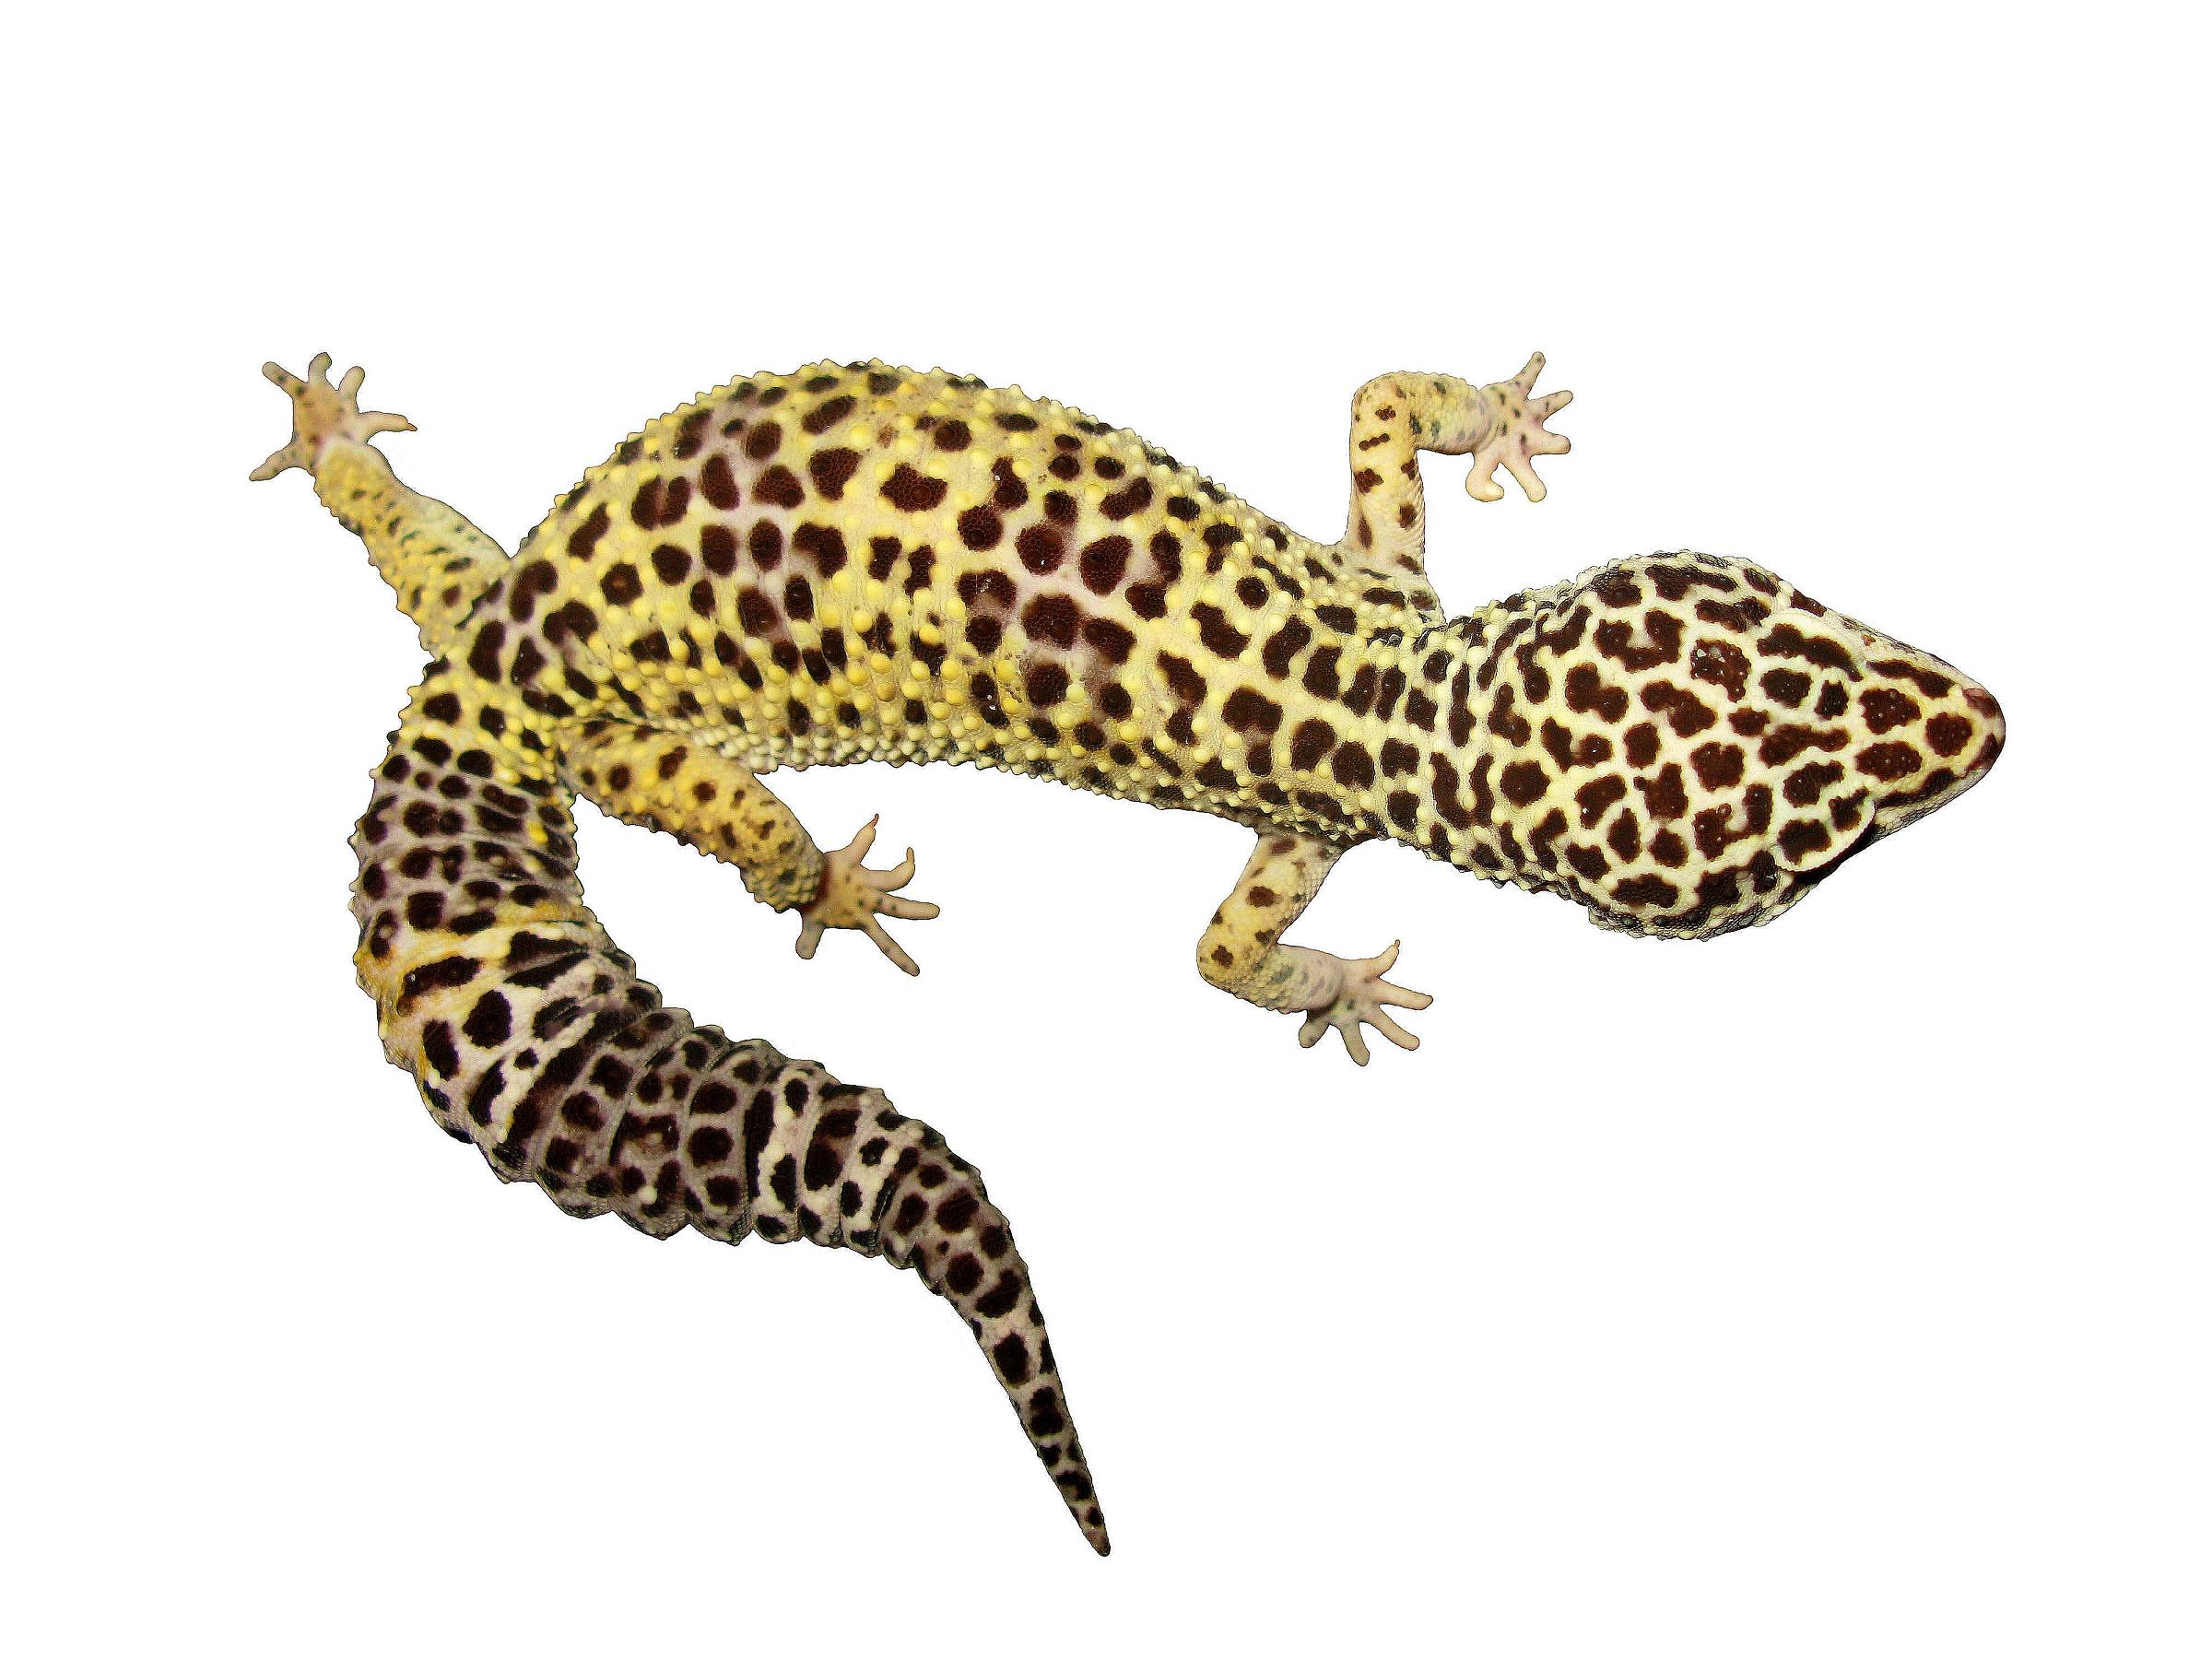 gecko lizard picture 3653 pet gallery petpeoplesplace com